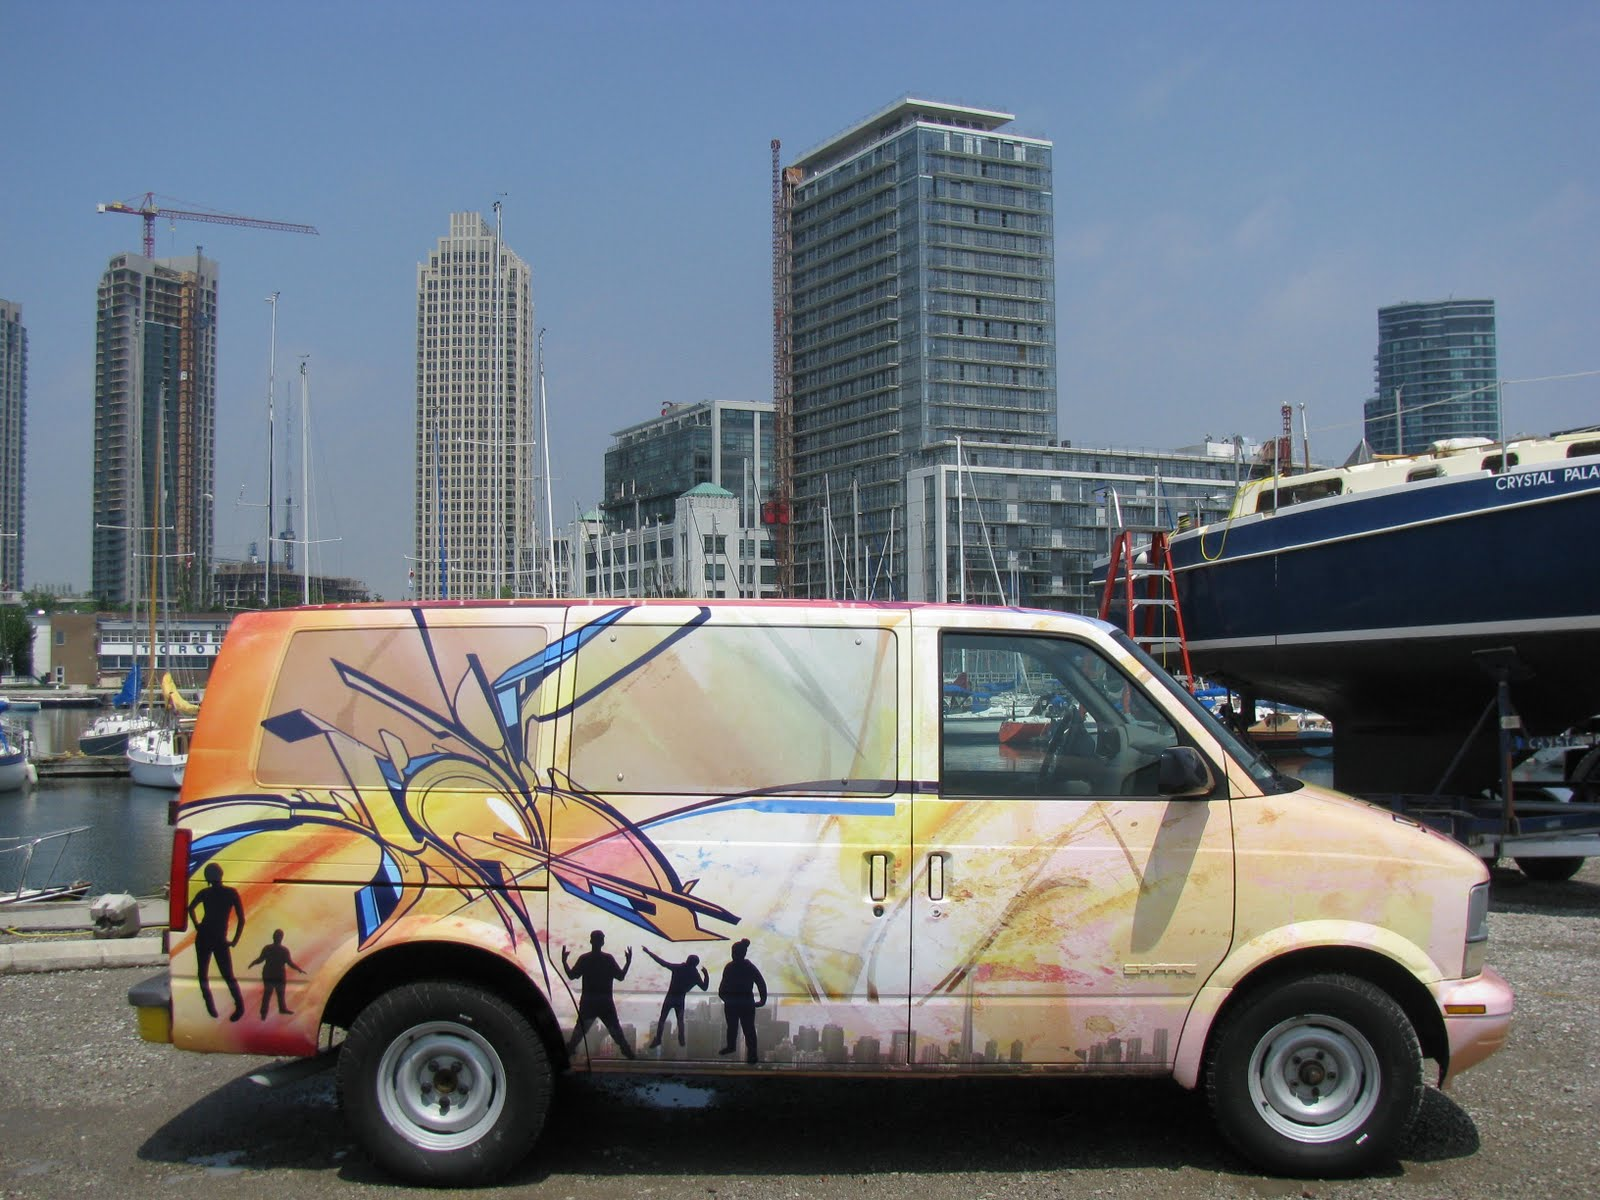 Art Amp Culture Maven Art On The Move Finale Of Quot Art Instead Of Advertising Quot Vehicles June 14 In